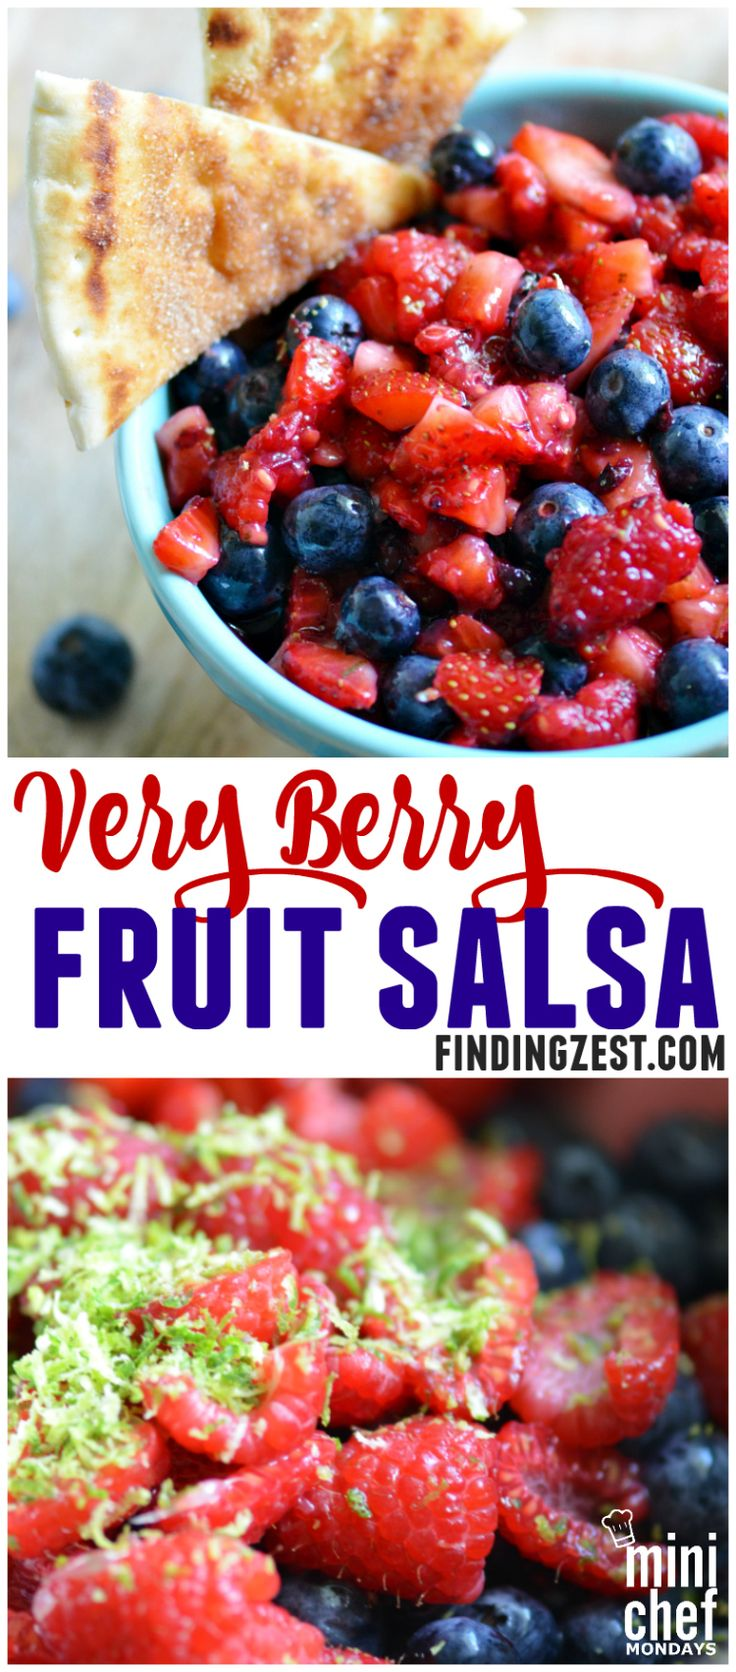 Very Berry Fruit Salsa: Enjoy this berry fruit salsa for summer. Featuring strawberries, blueberries and raspberries,this salsa can be served with cinnamon & sugar flatbread, tortilla crisps or your favorite chips!